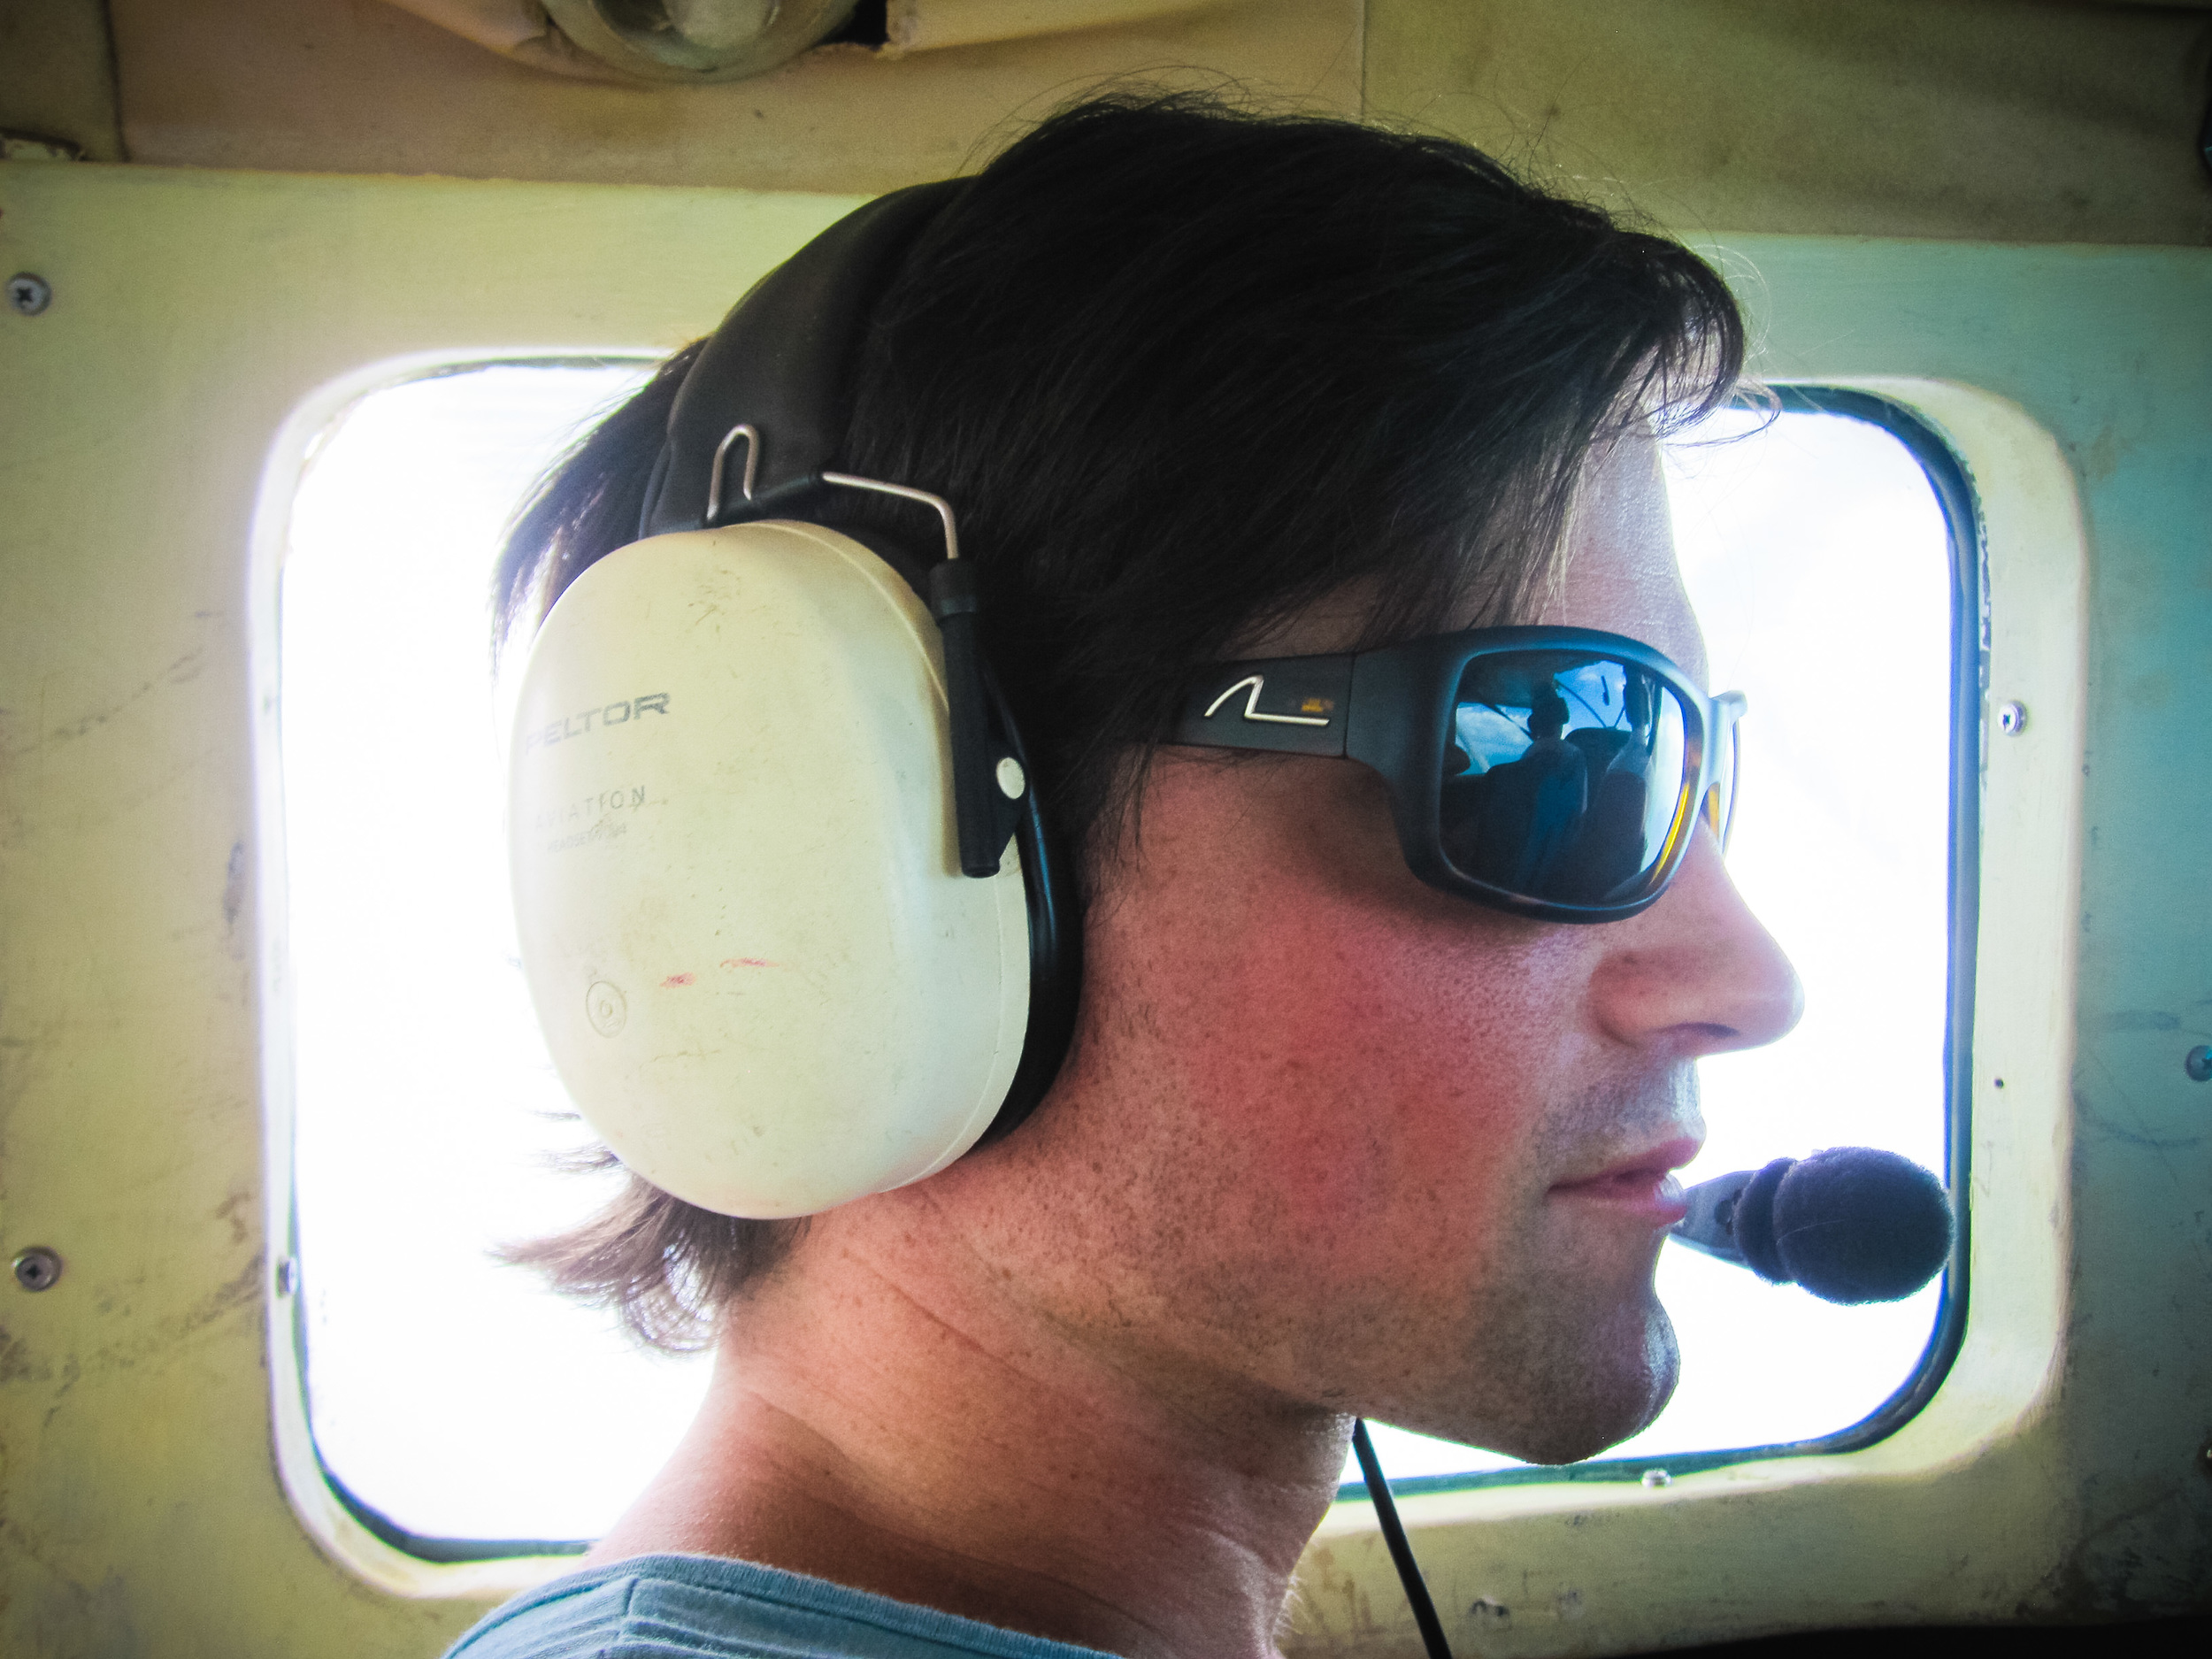 donny the pilot in alue optics five